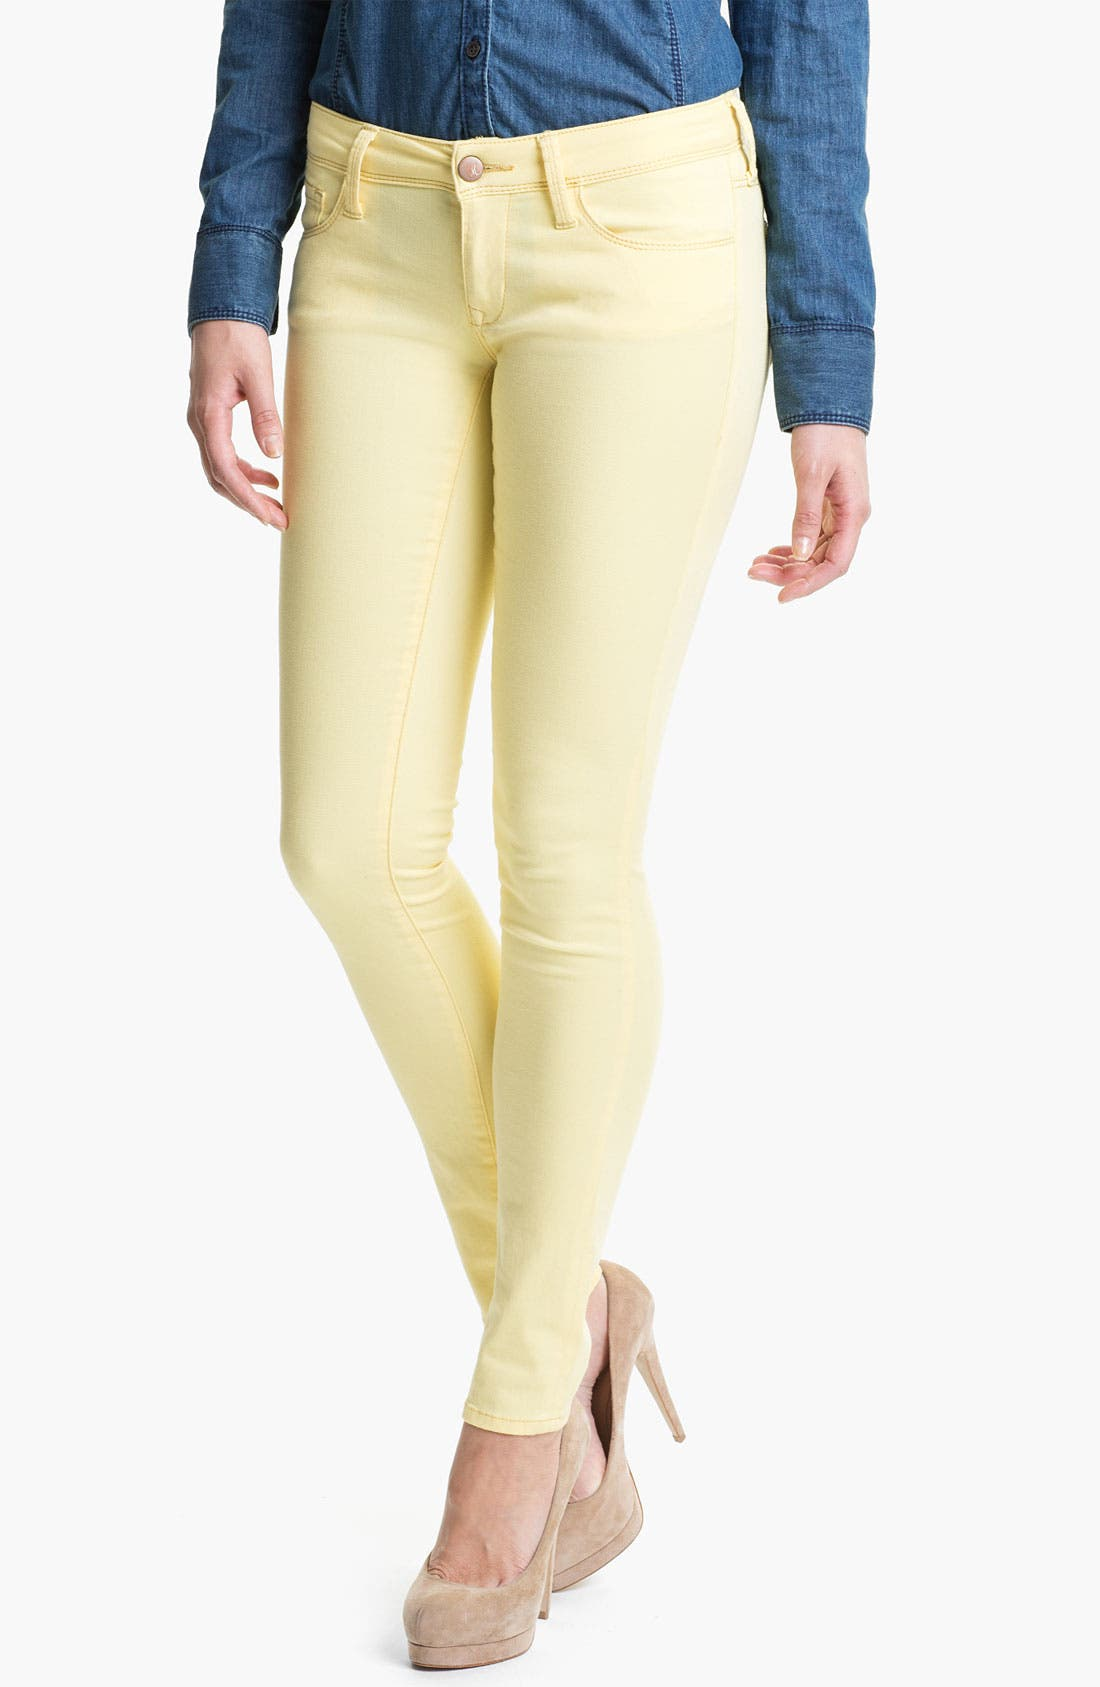 Alternate Image 1 Selected - Mavi Jeans 'Serena' Low Rise Super Skinny Jeans (Online Exclusive)